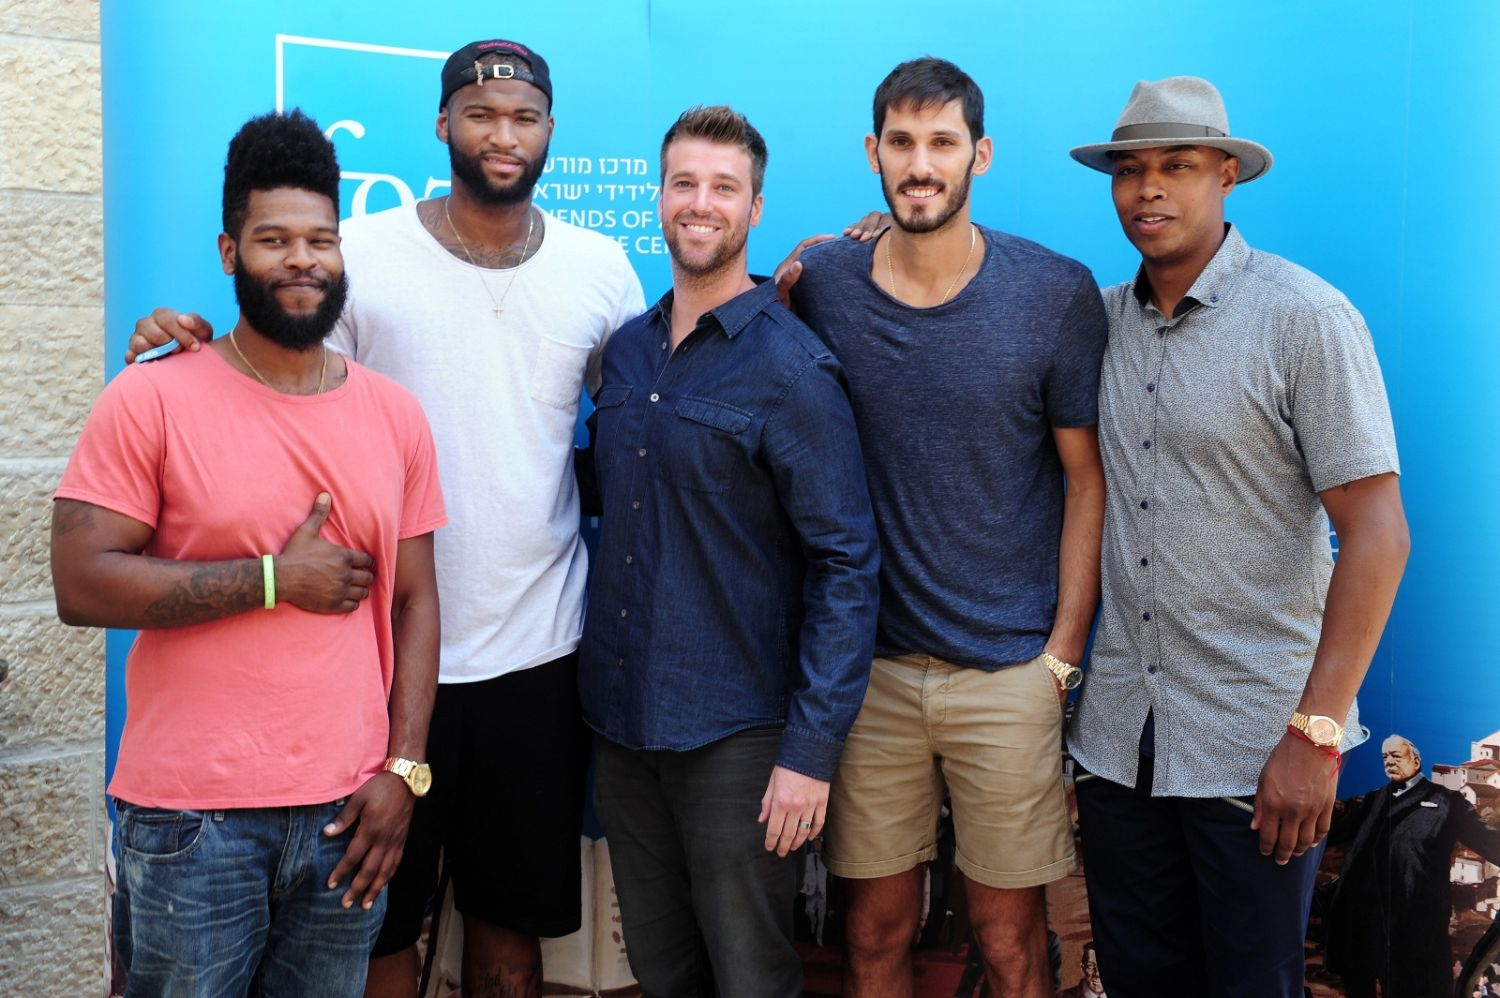 Omri Casspi, second from right, and other NBA players visiting Jerusalem's Friends of Zion museum. Photo by Kfir Sivan